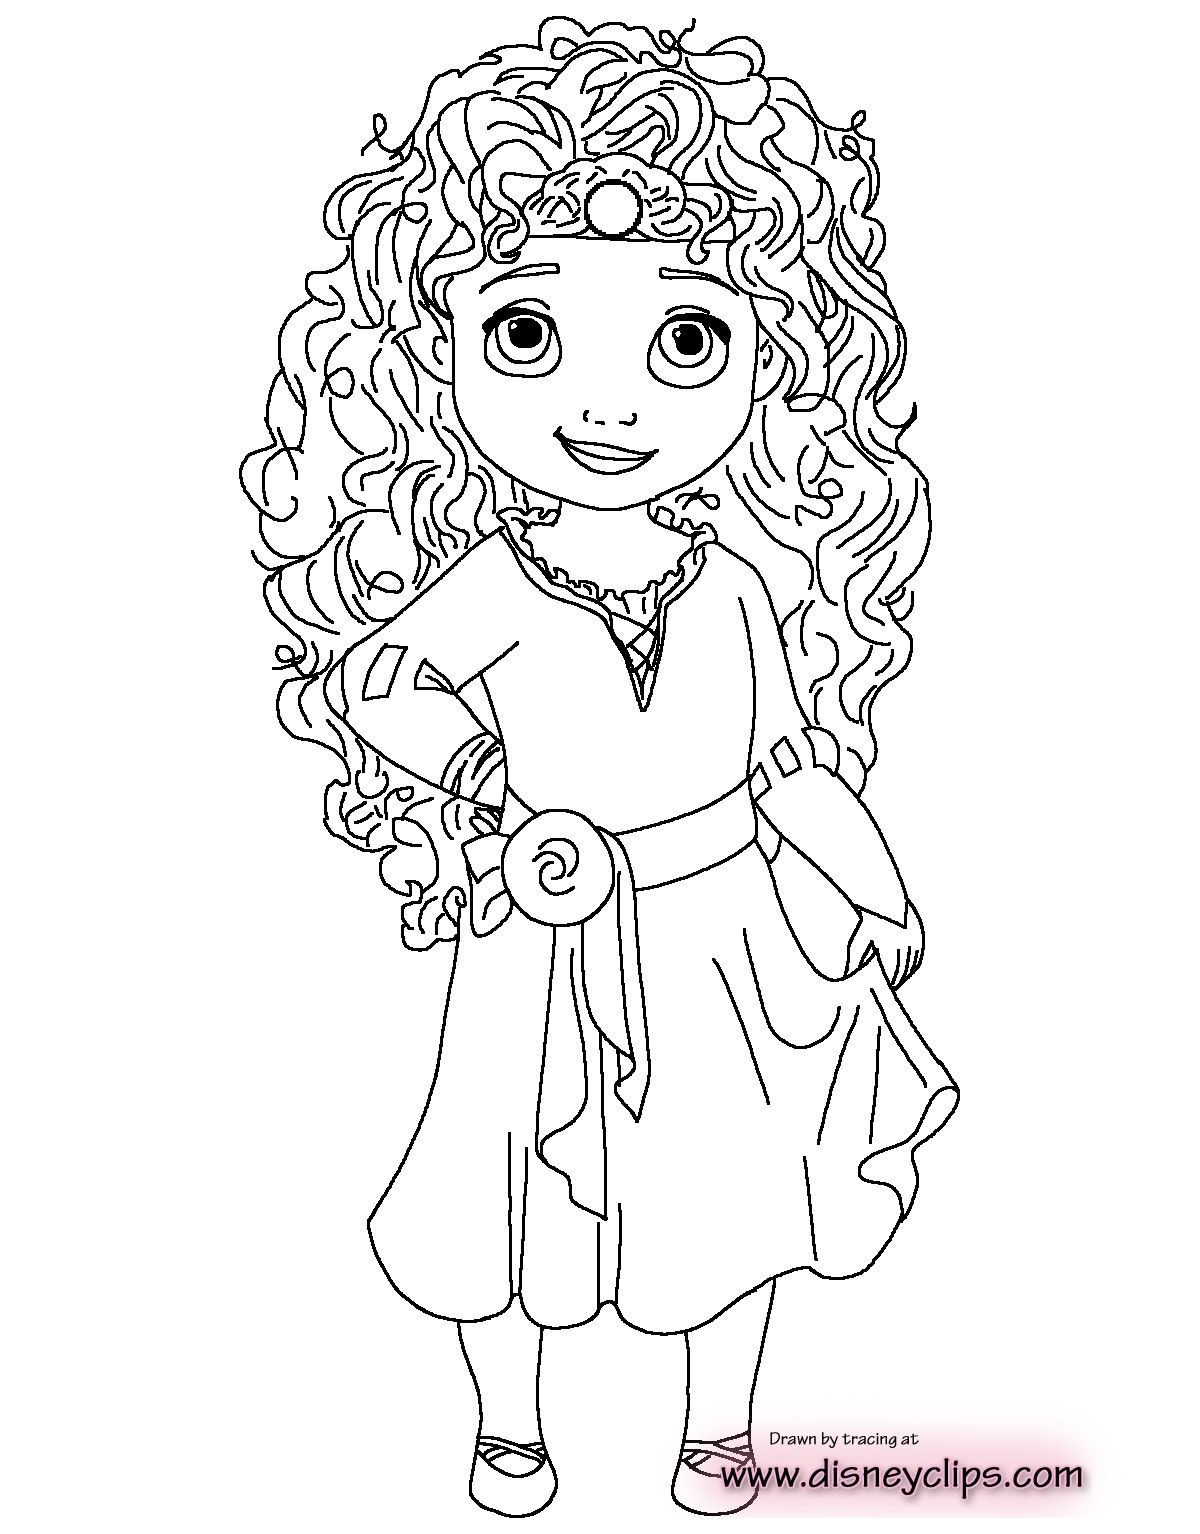 Baby Princess Coloring Page Through The Thousand Photos On Line With Regards To Baby Princess